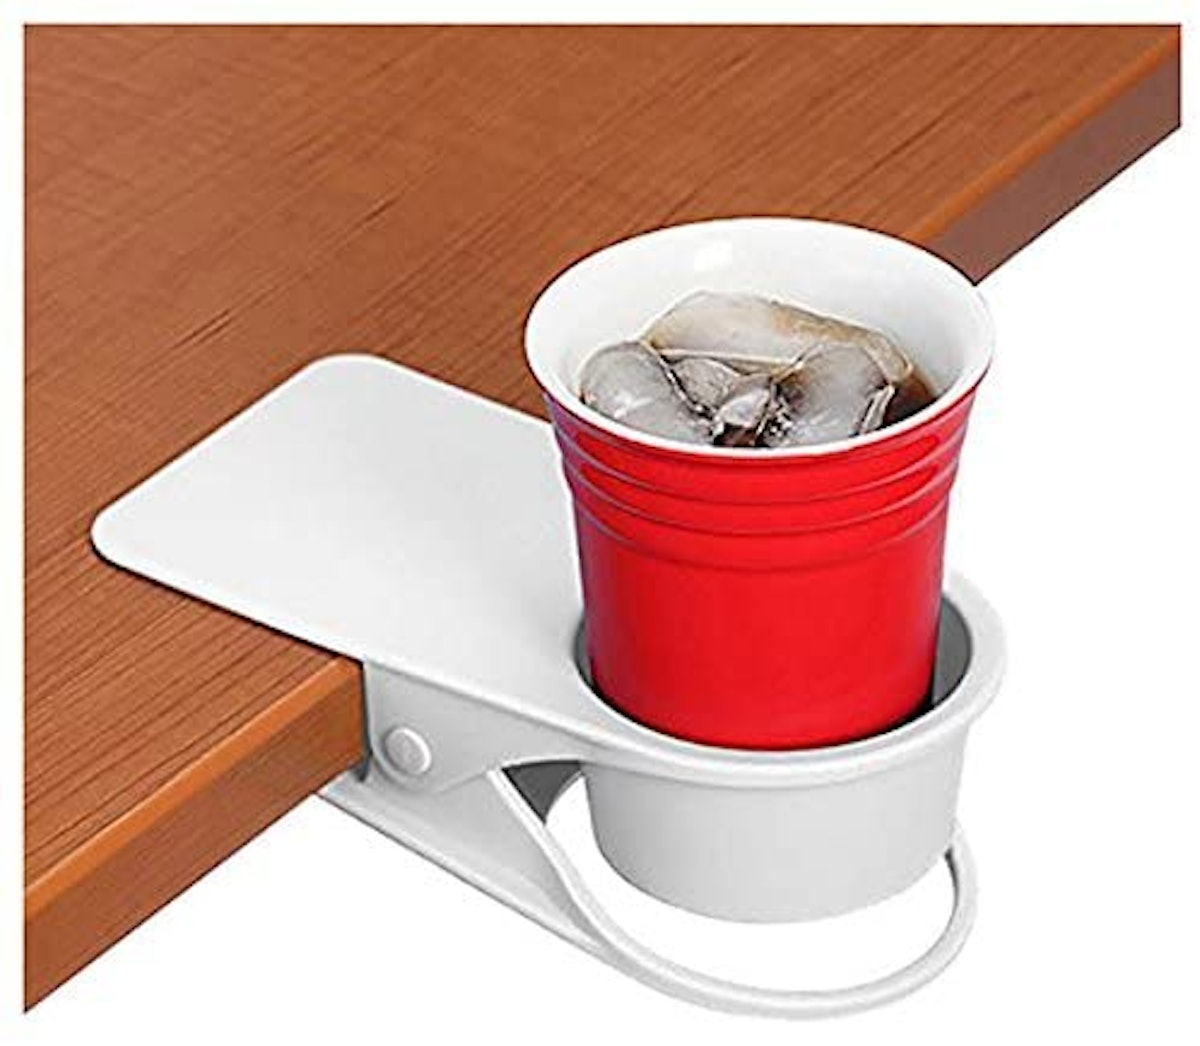 Supercope Drinking Cup Holder Clip